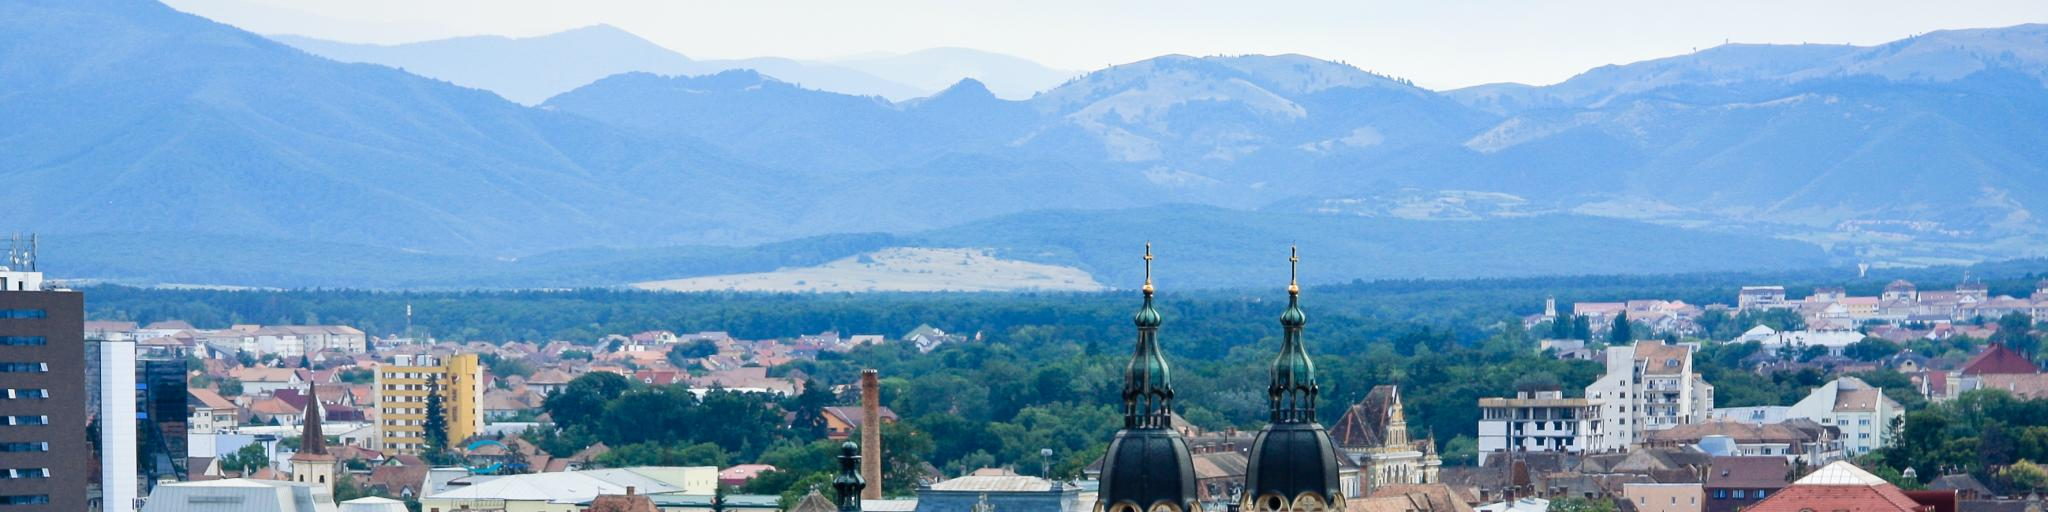 The Holy Trinity Cathedral is one of the most distinctive landmarks in Sibiu, Romania